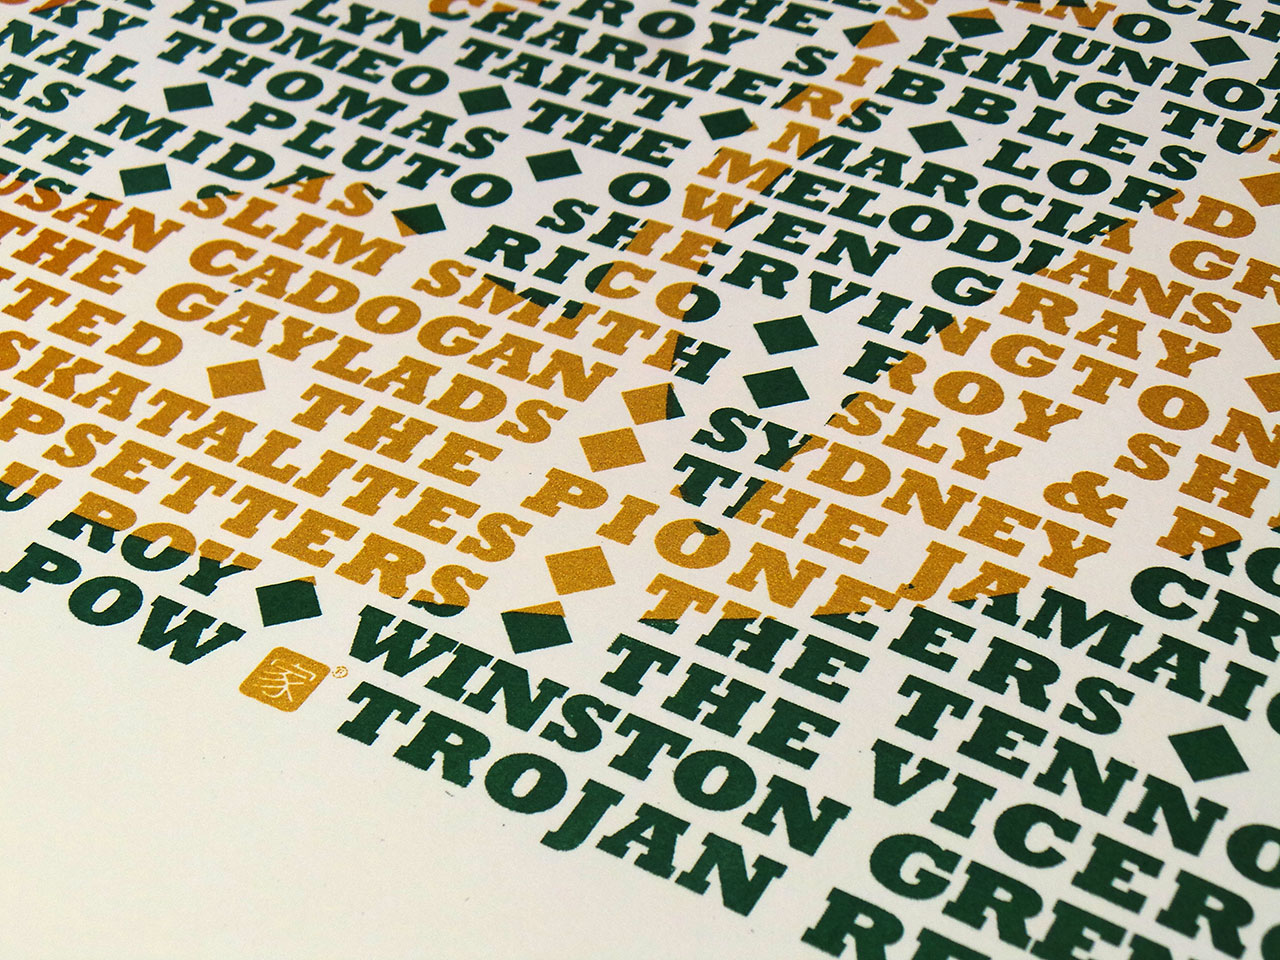 Trojan Records - limited edition screen print by uchi clothing